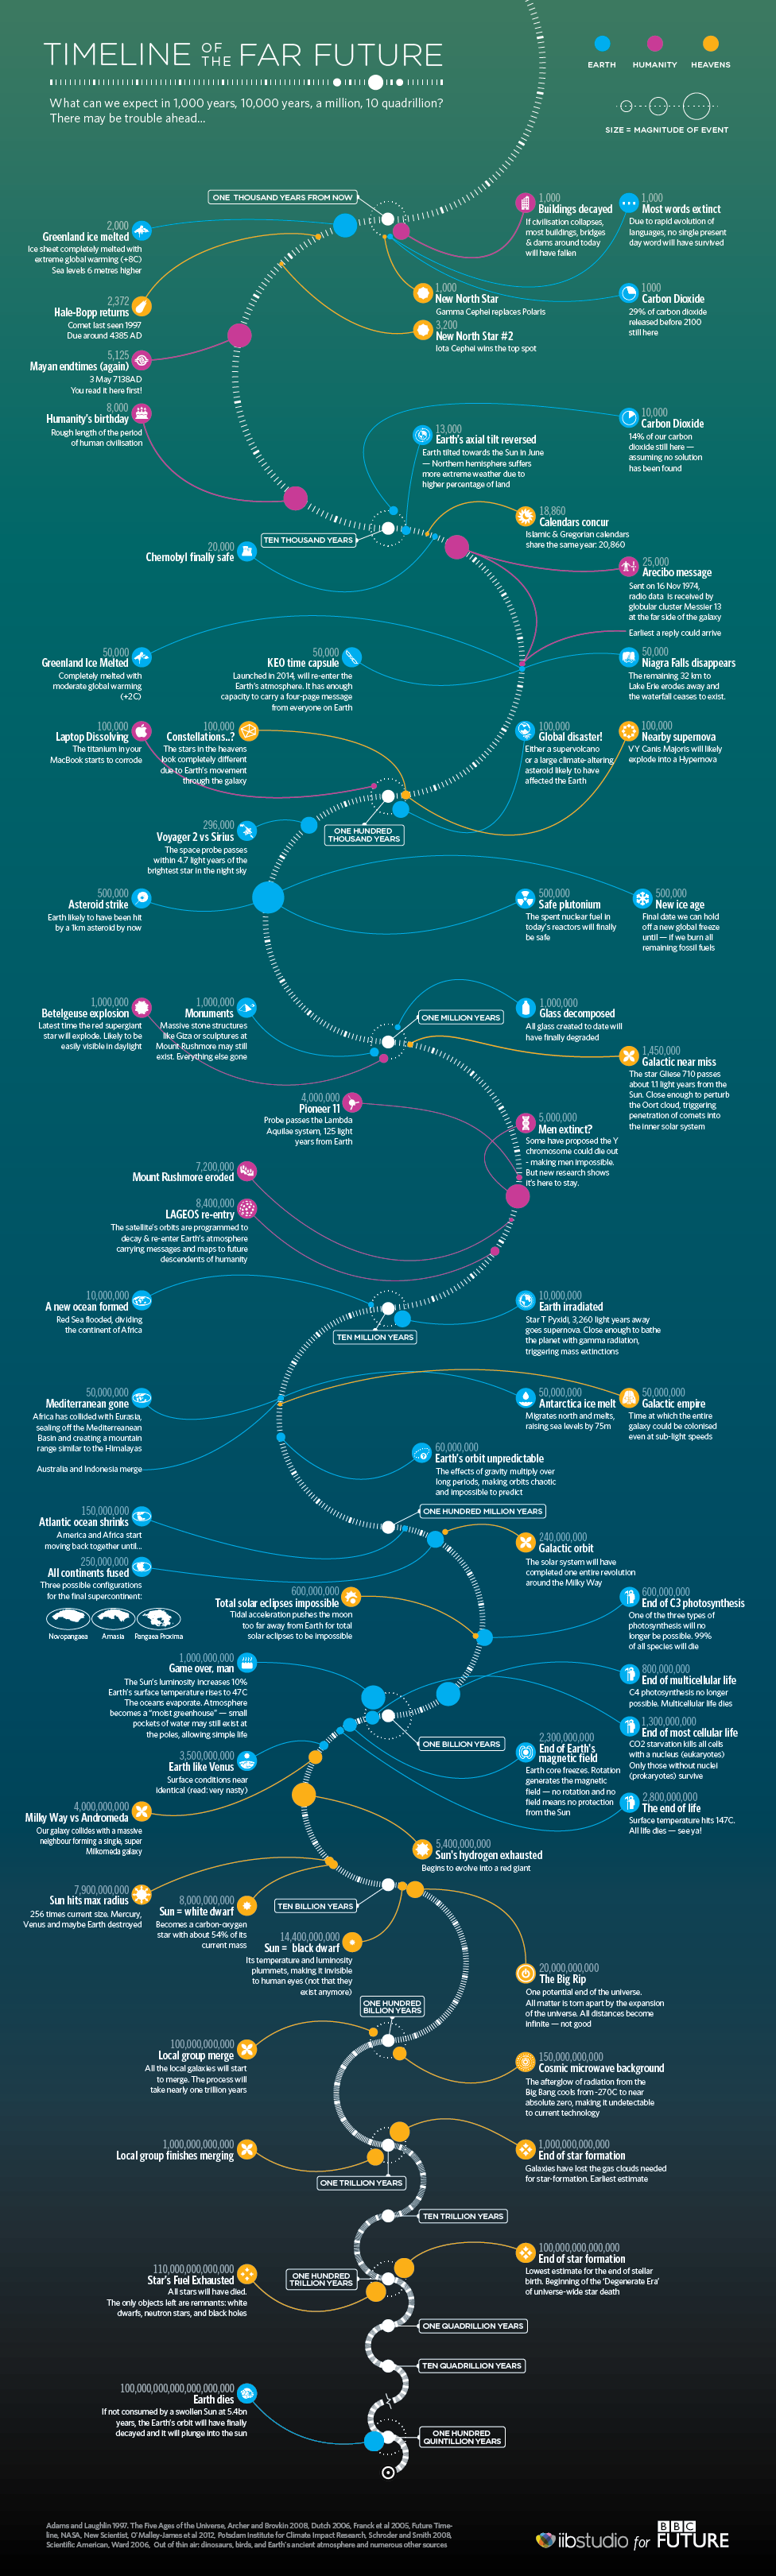 timeline-of-the-far-future_52d481e19c764